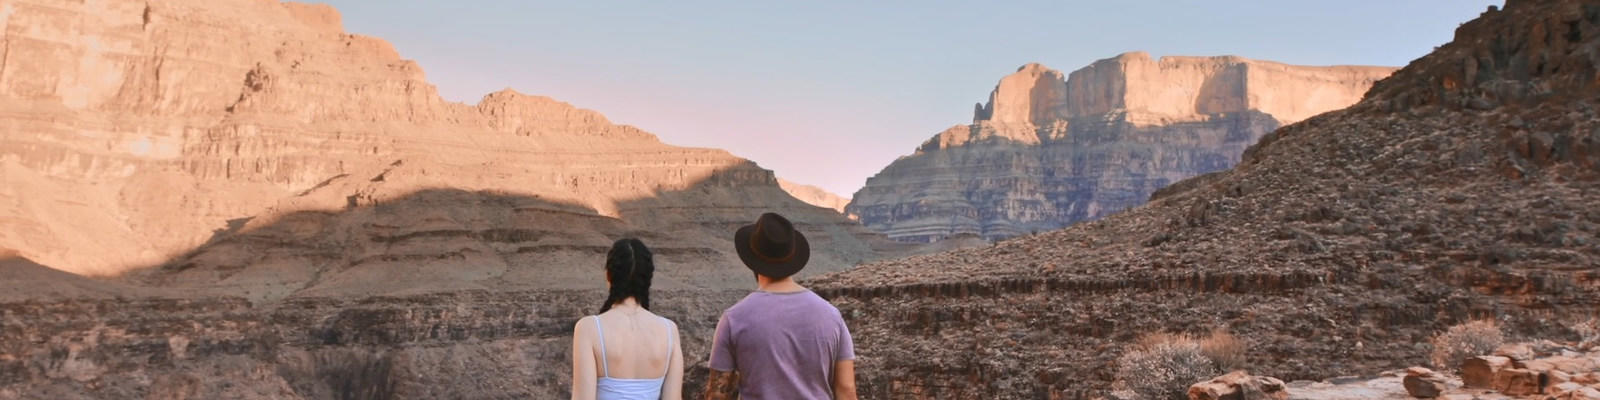 Two travellers at Grand Canyon looking out into the distance